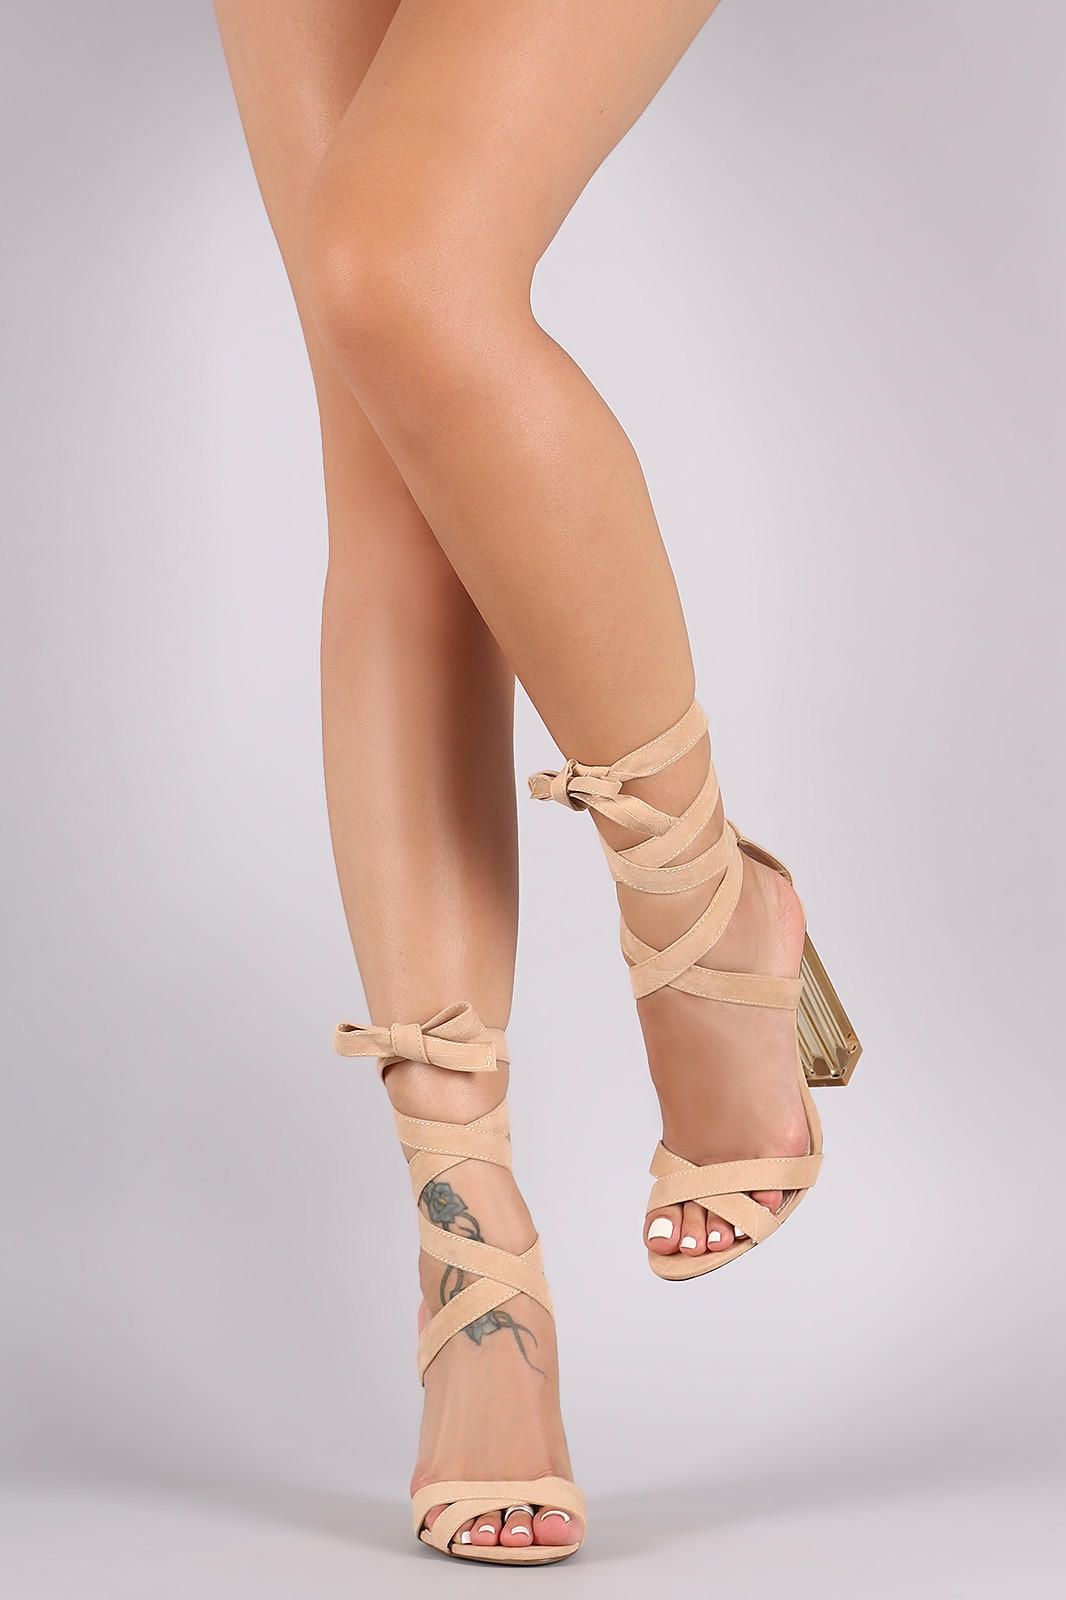 91189a7400c30a Suede Open Toe Lace Up Lucite Heel from Puckees. Saved to Heels ❤. Shop  more products from Puckees on Wanelo.